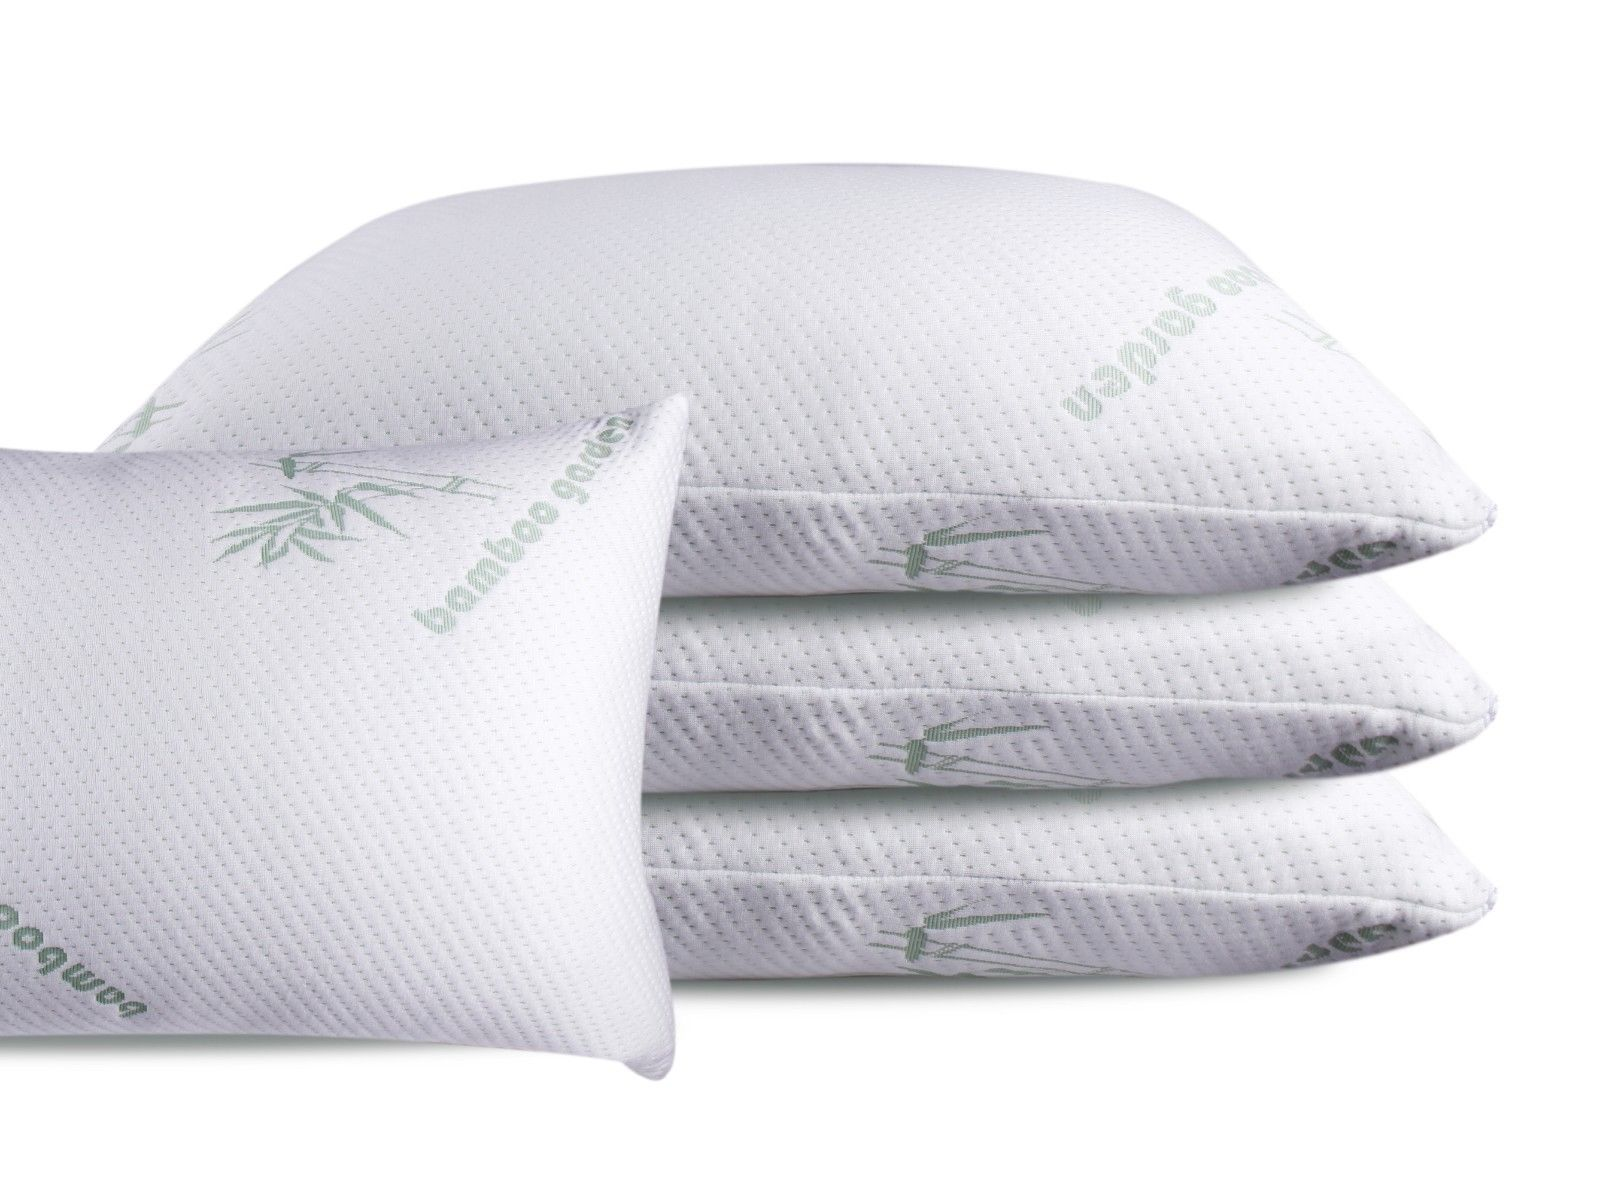 1Piece King HIGH DENSITY Memory Foam Bed Pillow 100 CertiPur